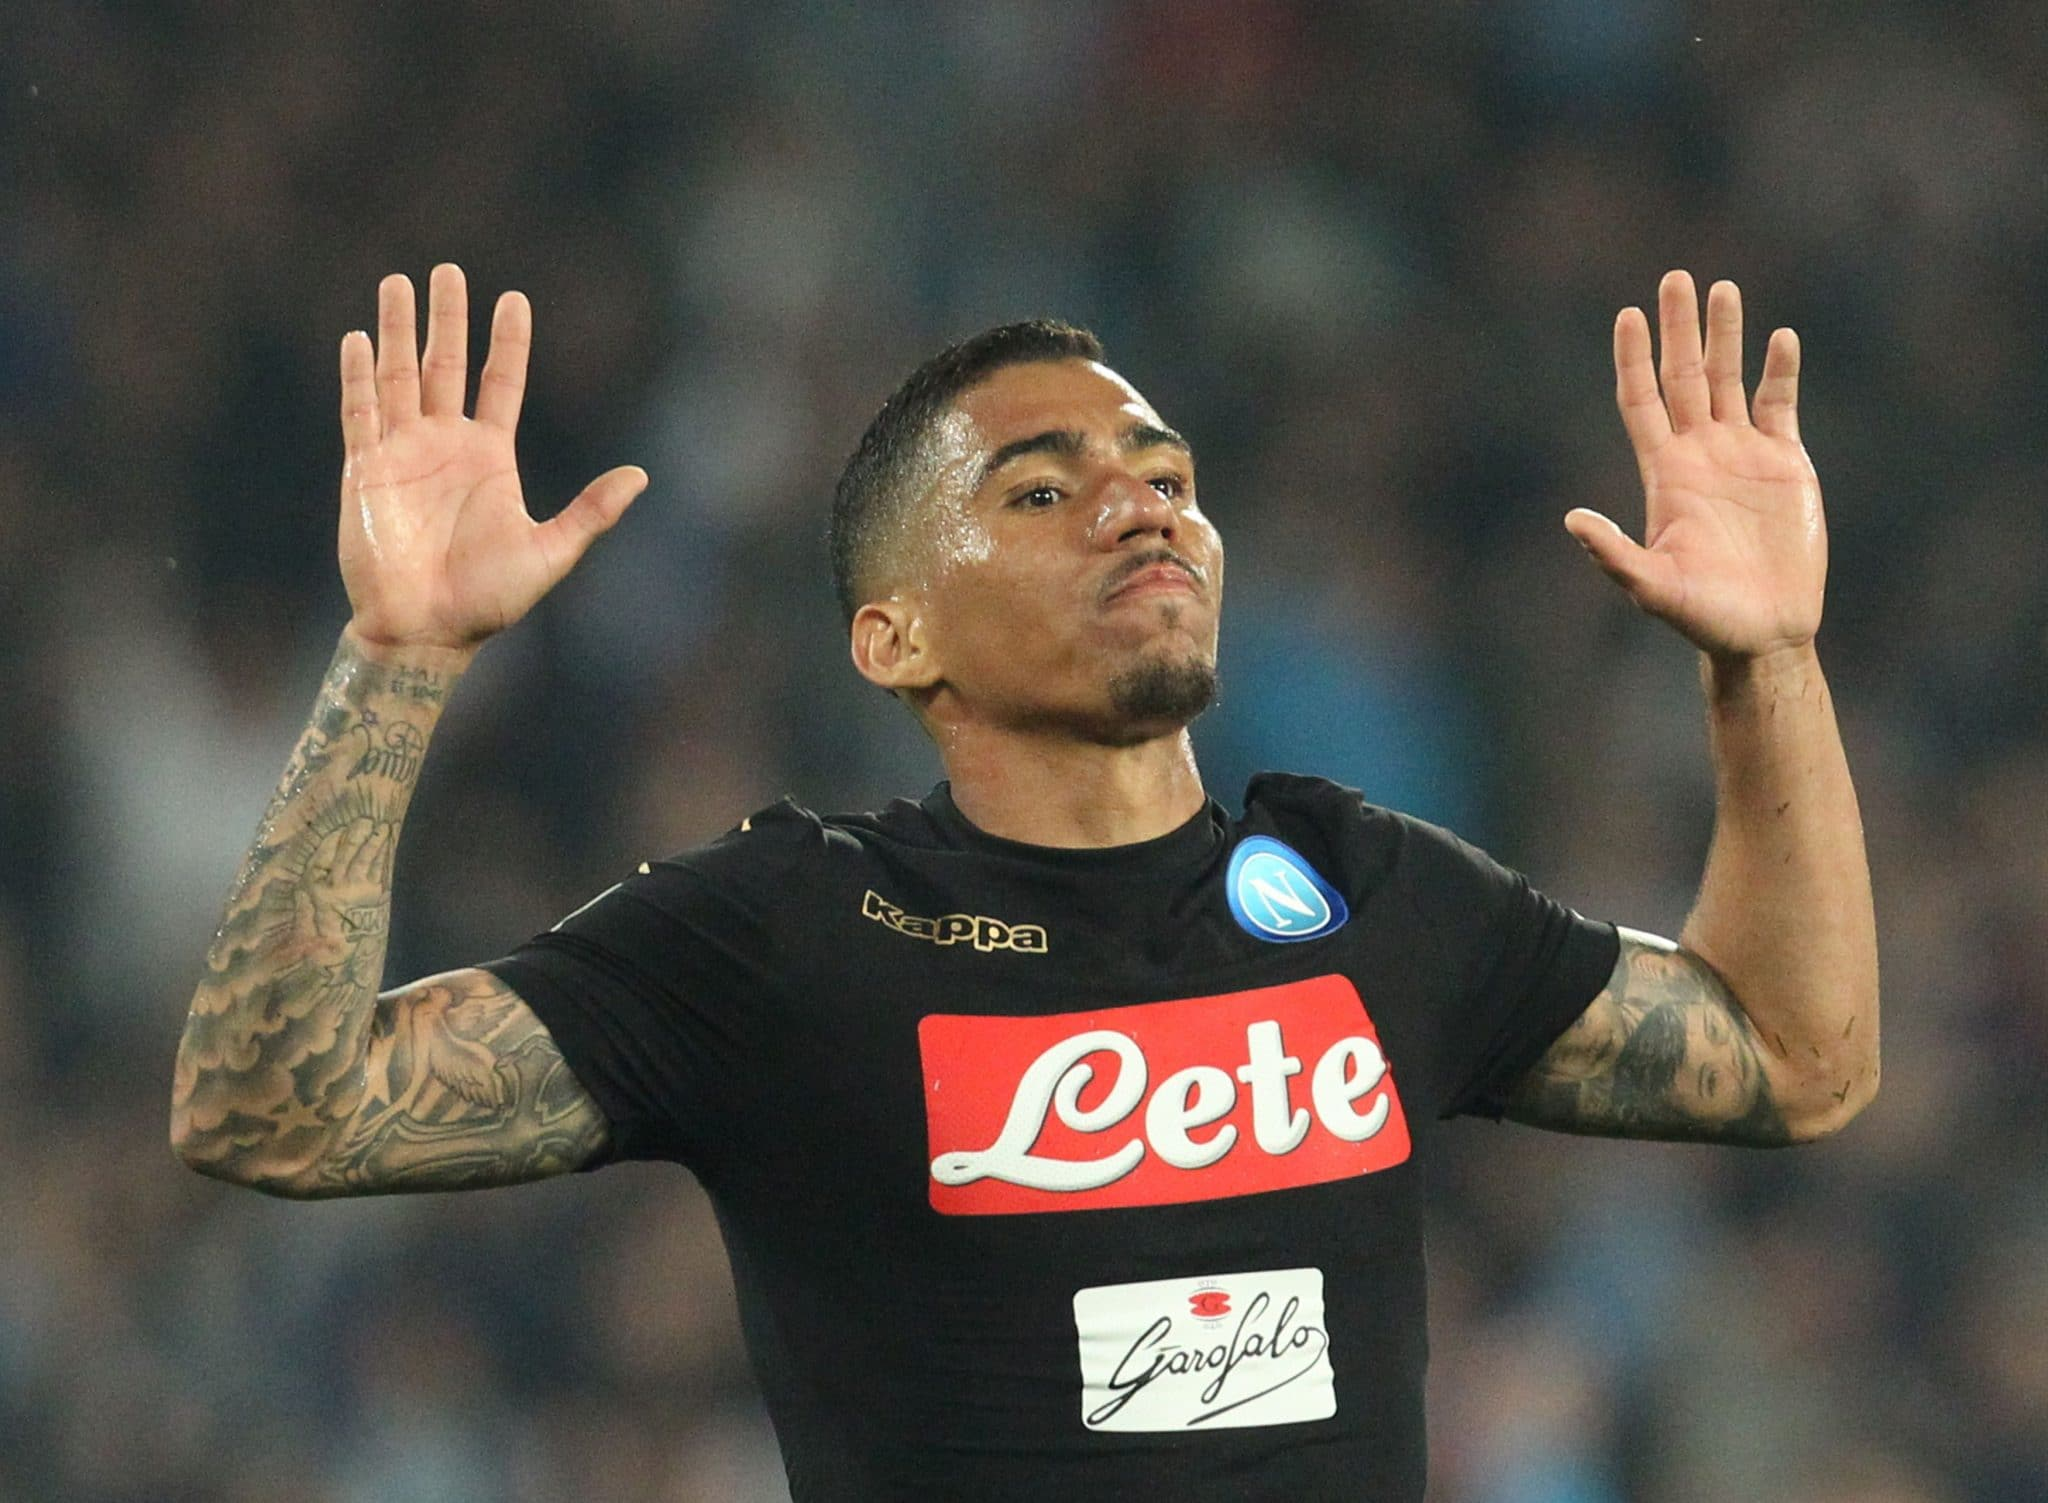 Napoli's Brazilian midfielder Allan celebrates after scoring after scoring during the Italian Serie A football match SSC Napoli vs Udinese Calcio on April 15, 2017 at the San Paolo Stadium in Naples. / AFP PHOTO / CARLO HERMANN        (Photo credit should read CARLO HERMANN/AFP via Getty Images)